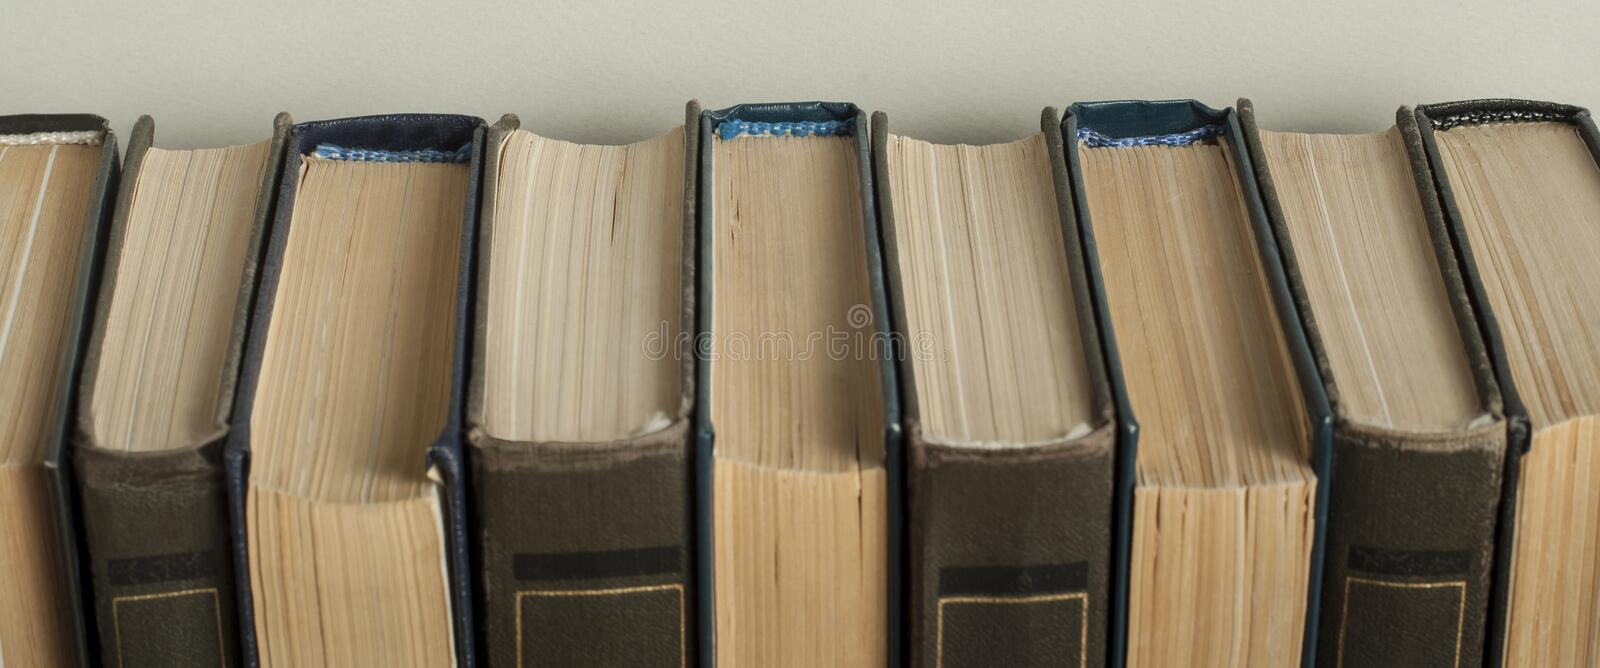 Stack of old books on wooden desk. Copy space for text. Back to school. Education background. royalty free stock photo